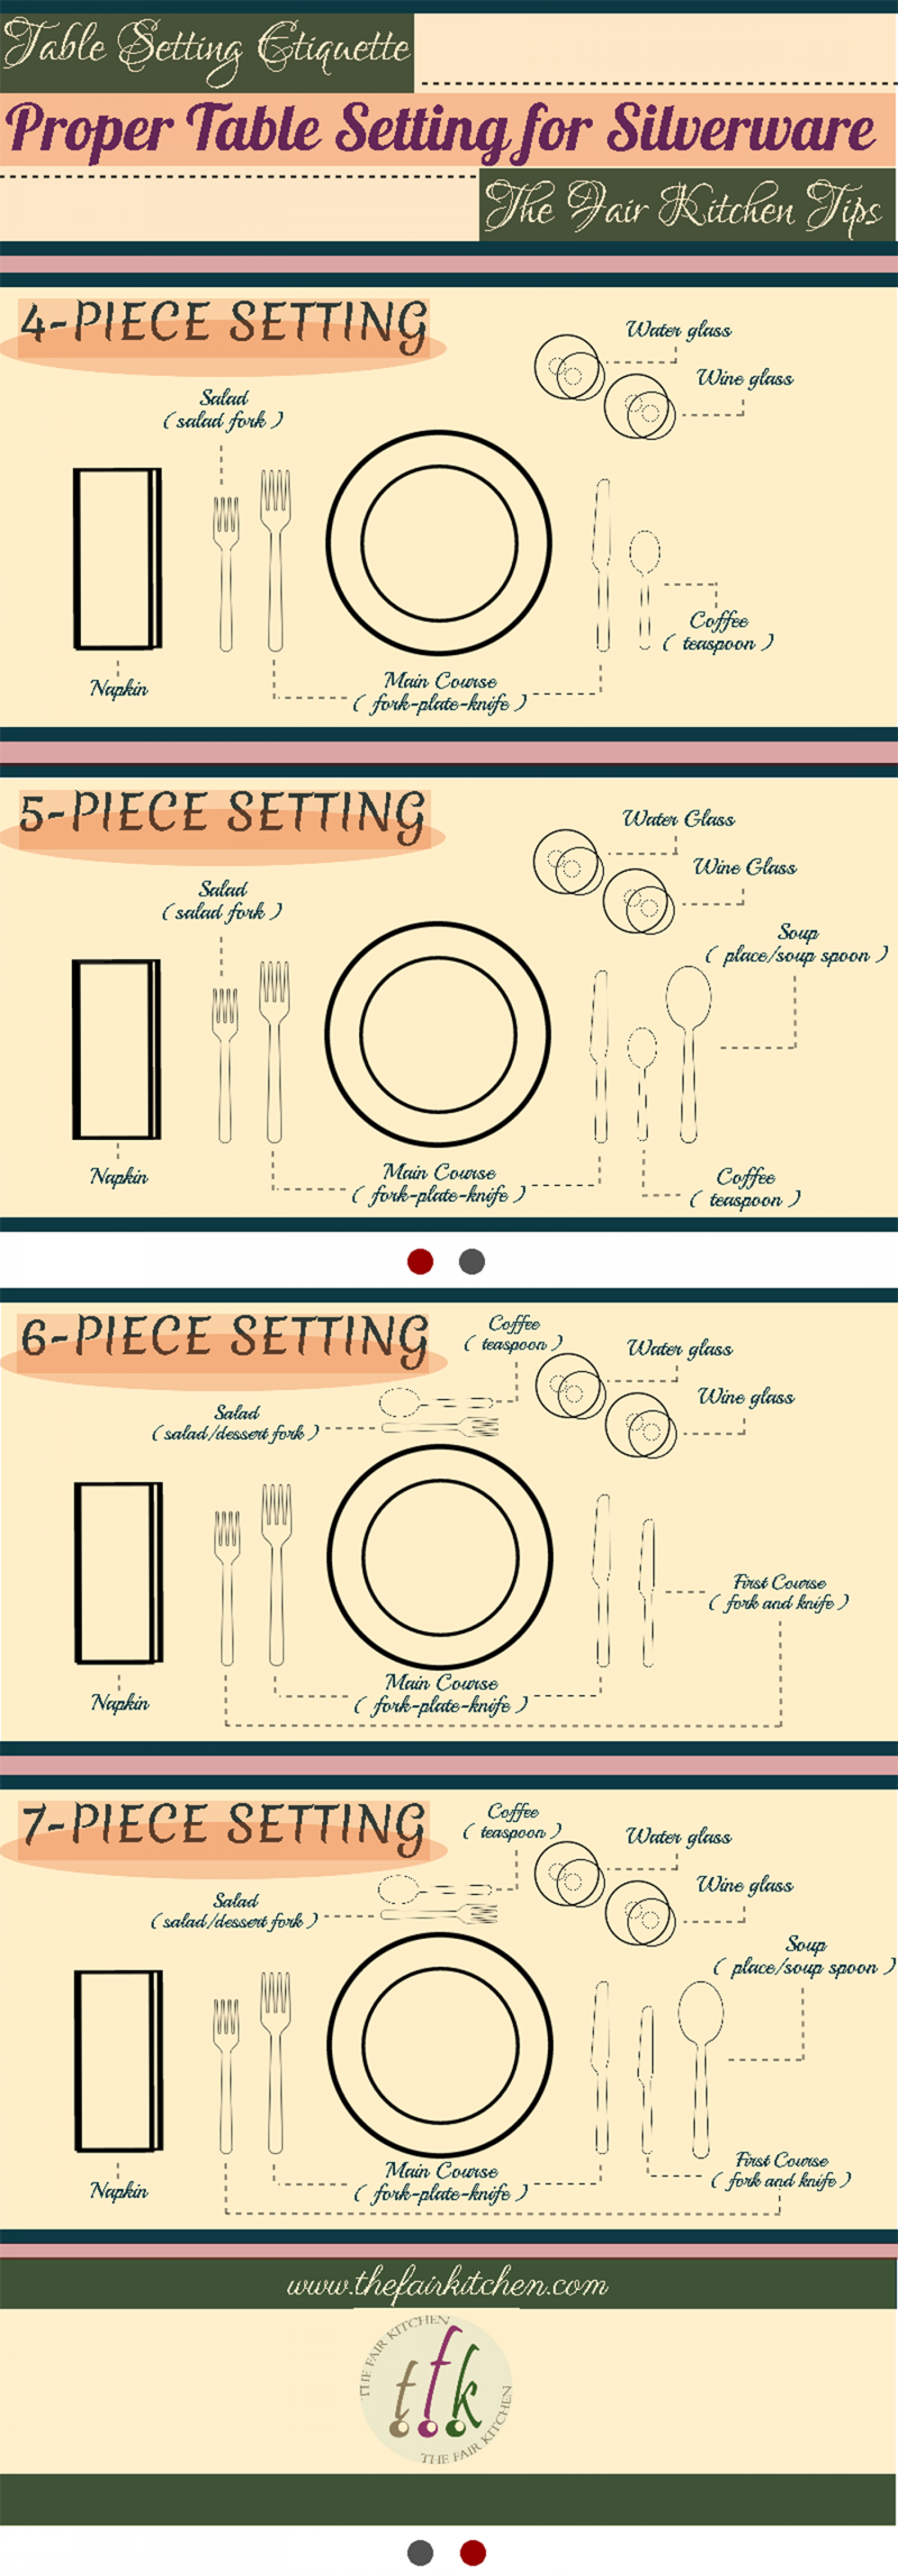 Table Setting Etiquette Proper Table Setting for Silverware (The Fair Kitchen Tips) Infographic  sc 1 st  Visually & Table Setting Etiquette: Proper Table Setting for Silverware (The ...